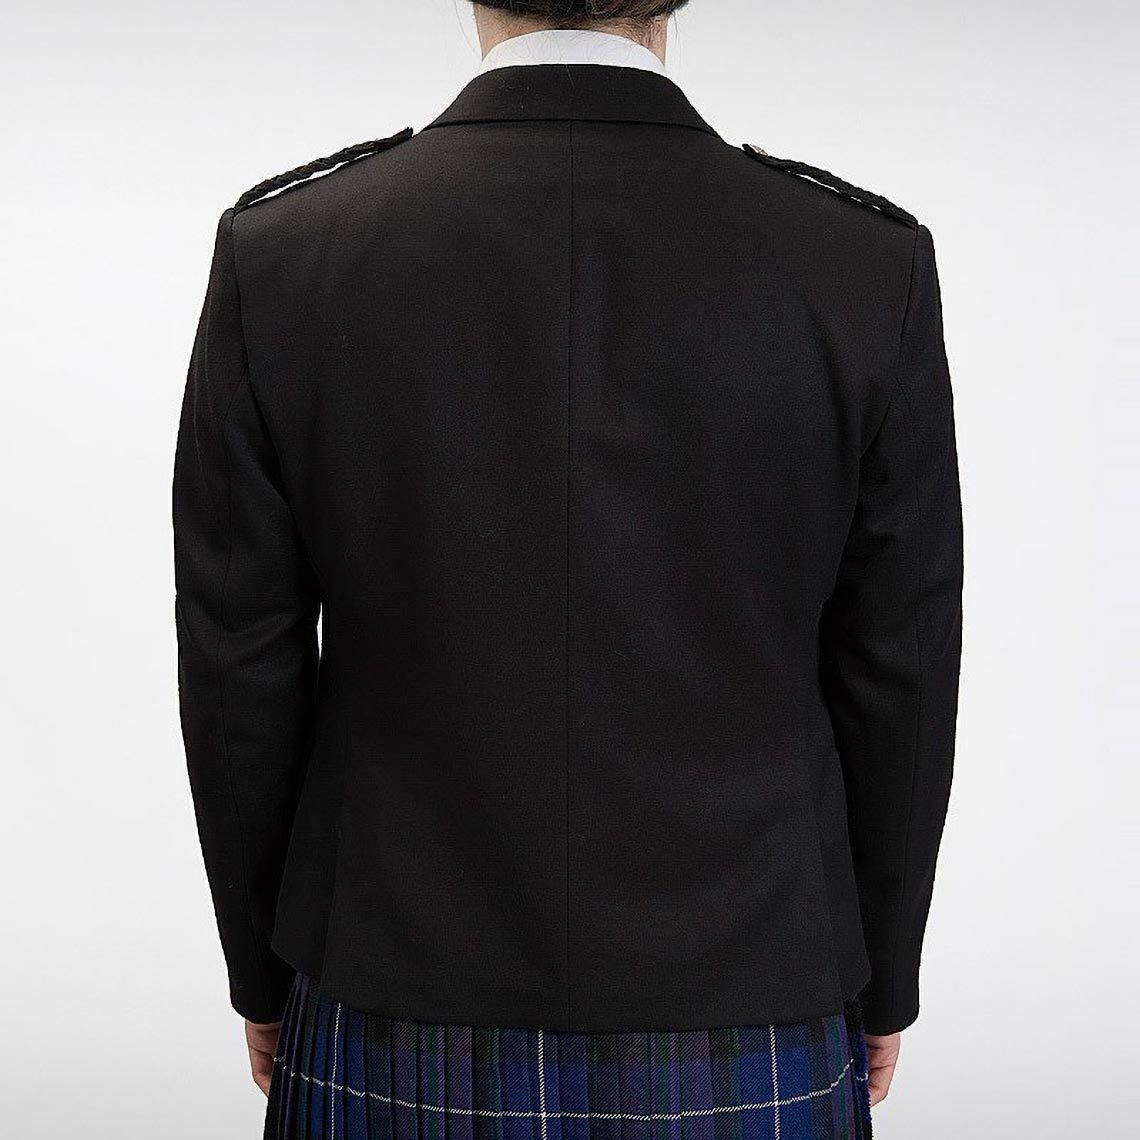 Black Magee Crail Jacket